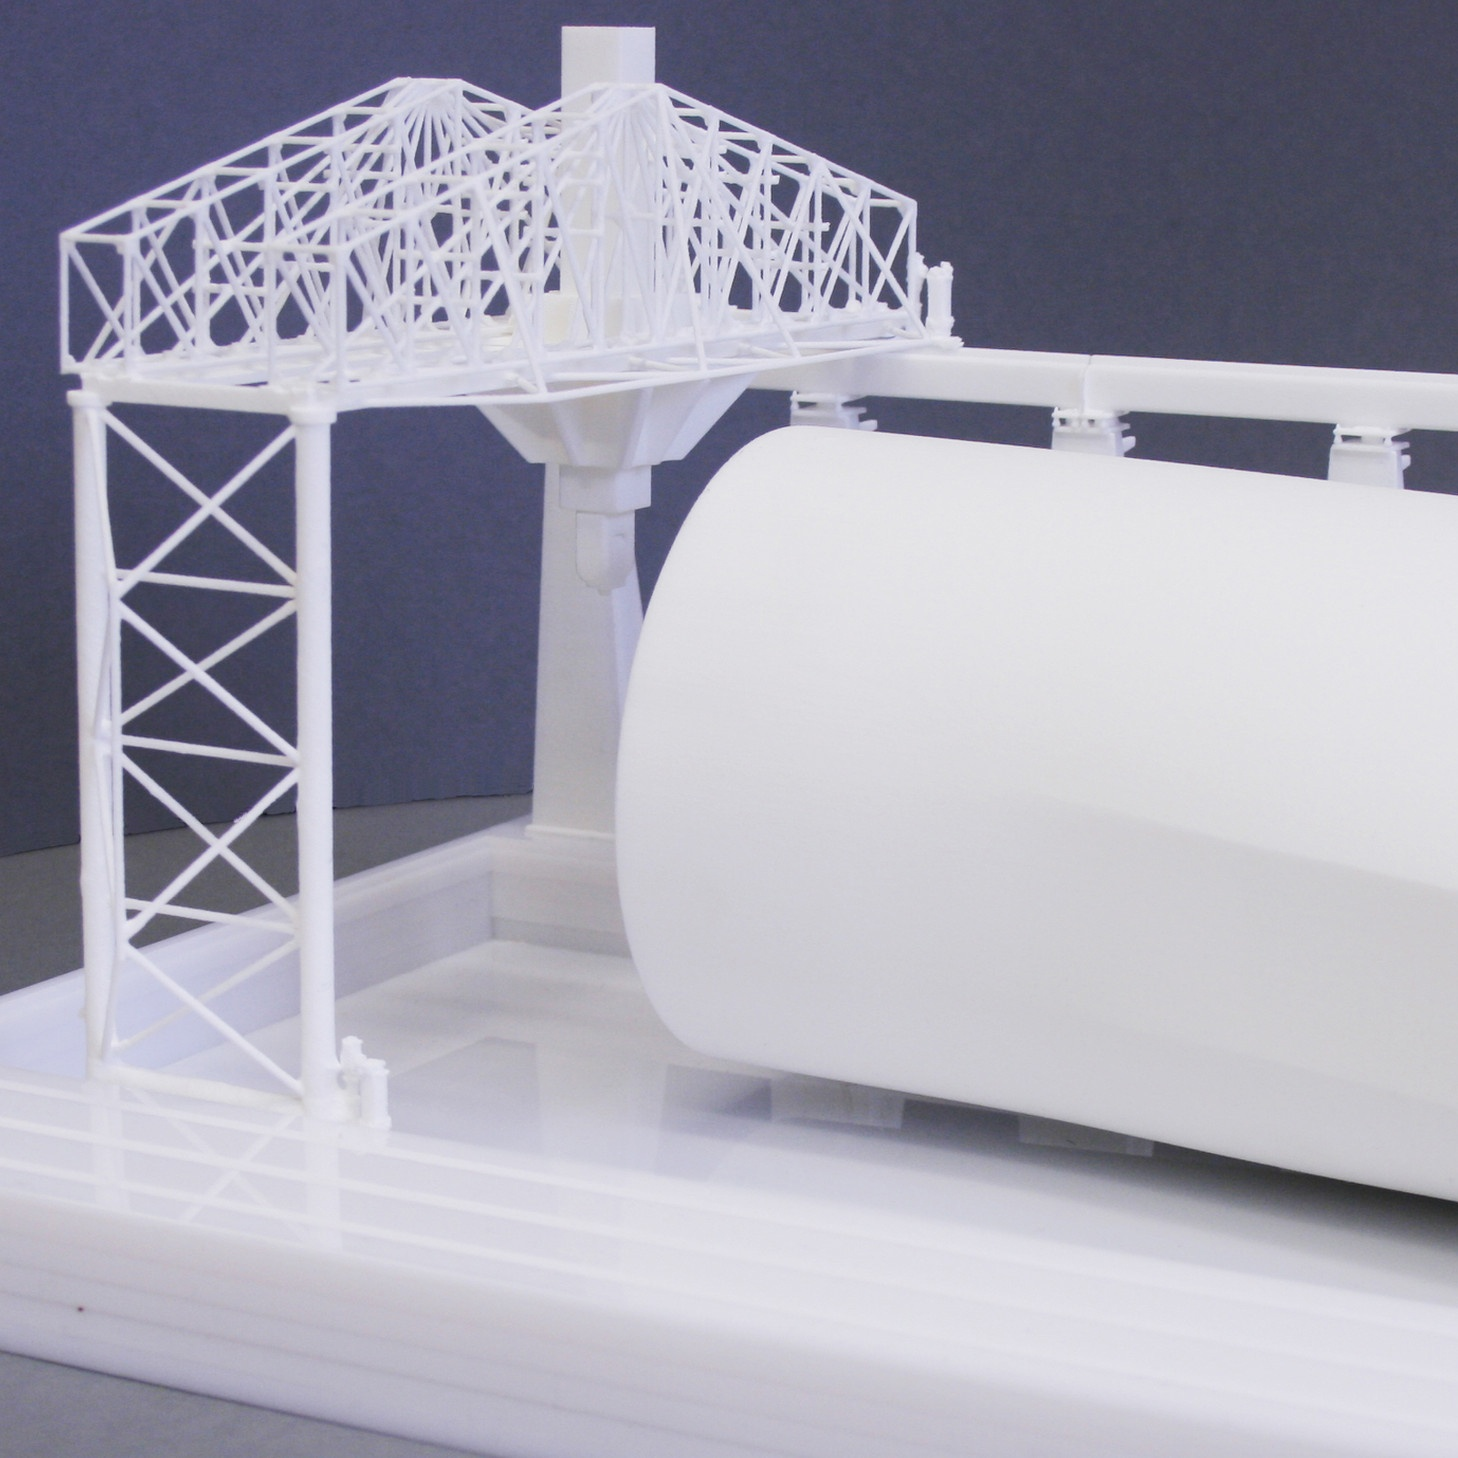 Frauenhofer 3D Printed Wind Tunnel Model